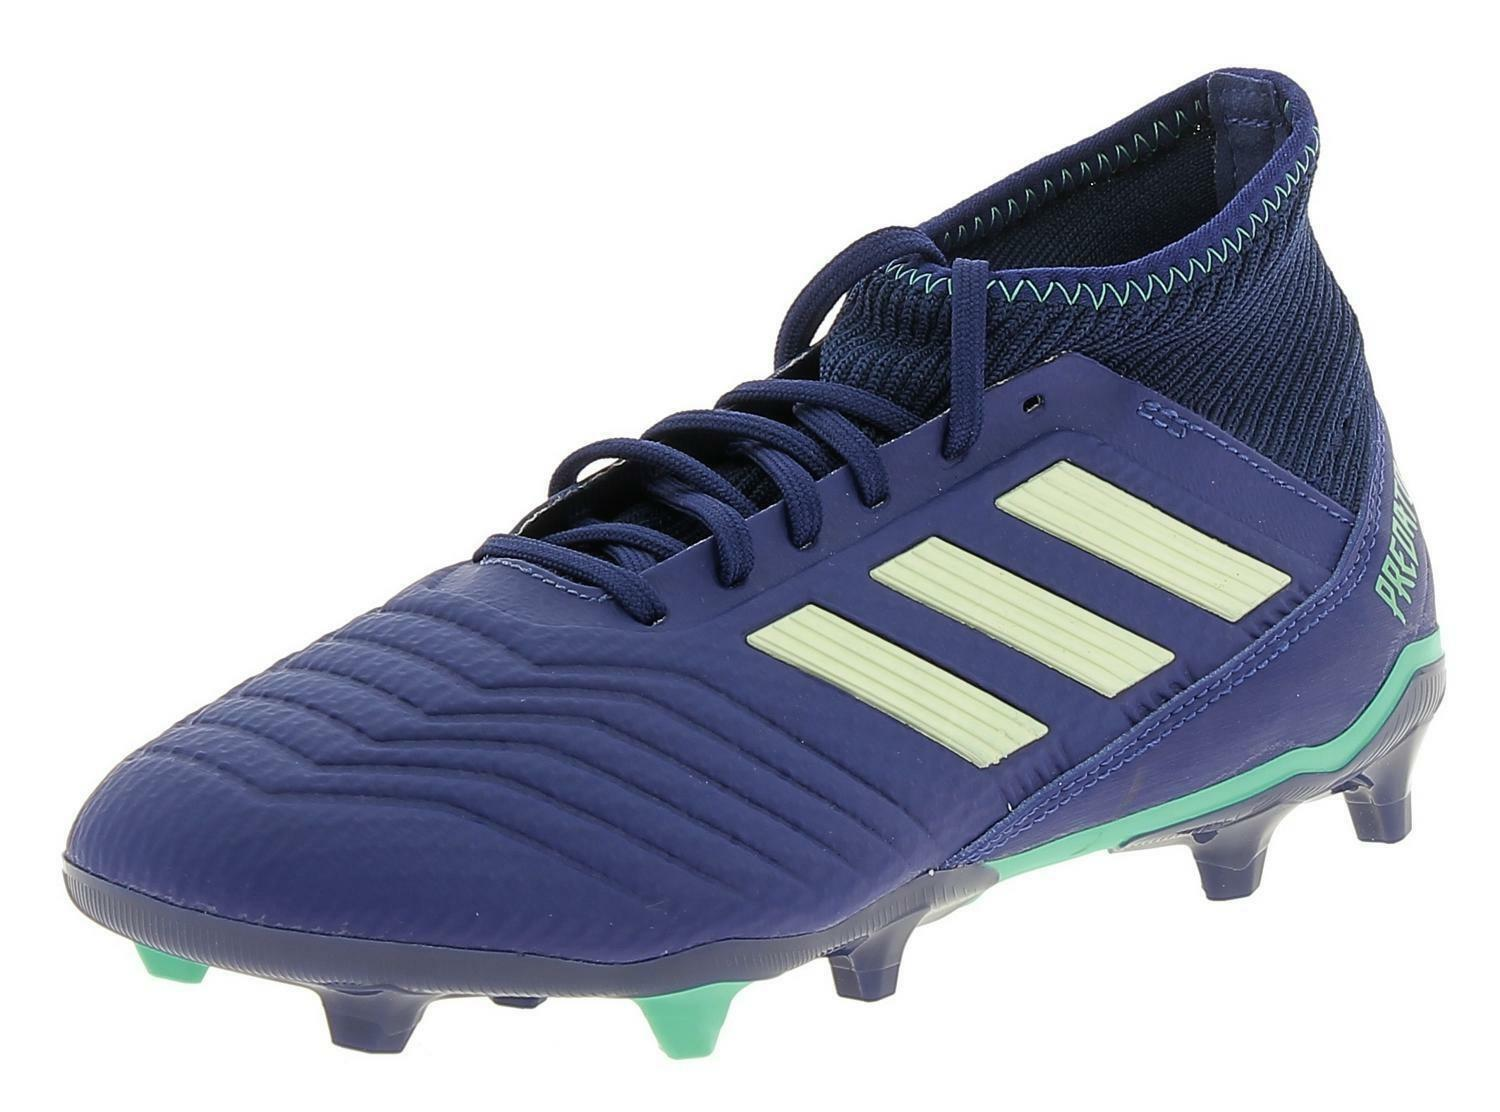 Details about ADIDAS Predator 18.3 Fg Men's Football Shoes Blue CP9304